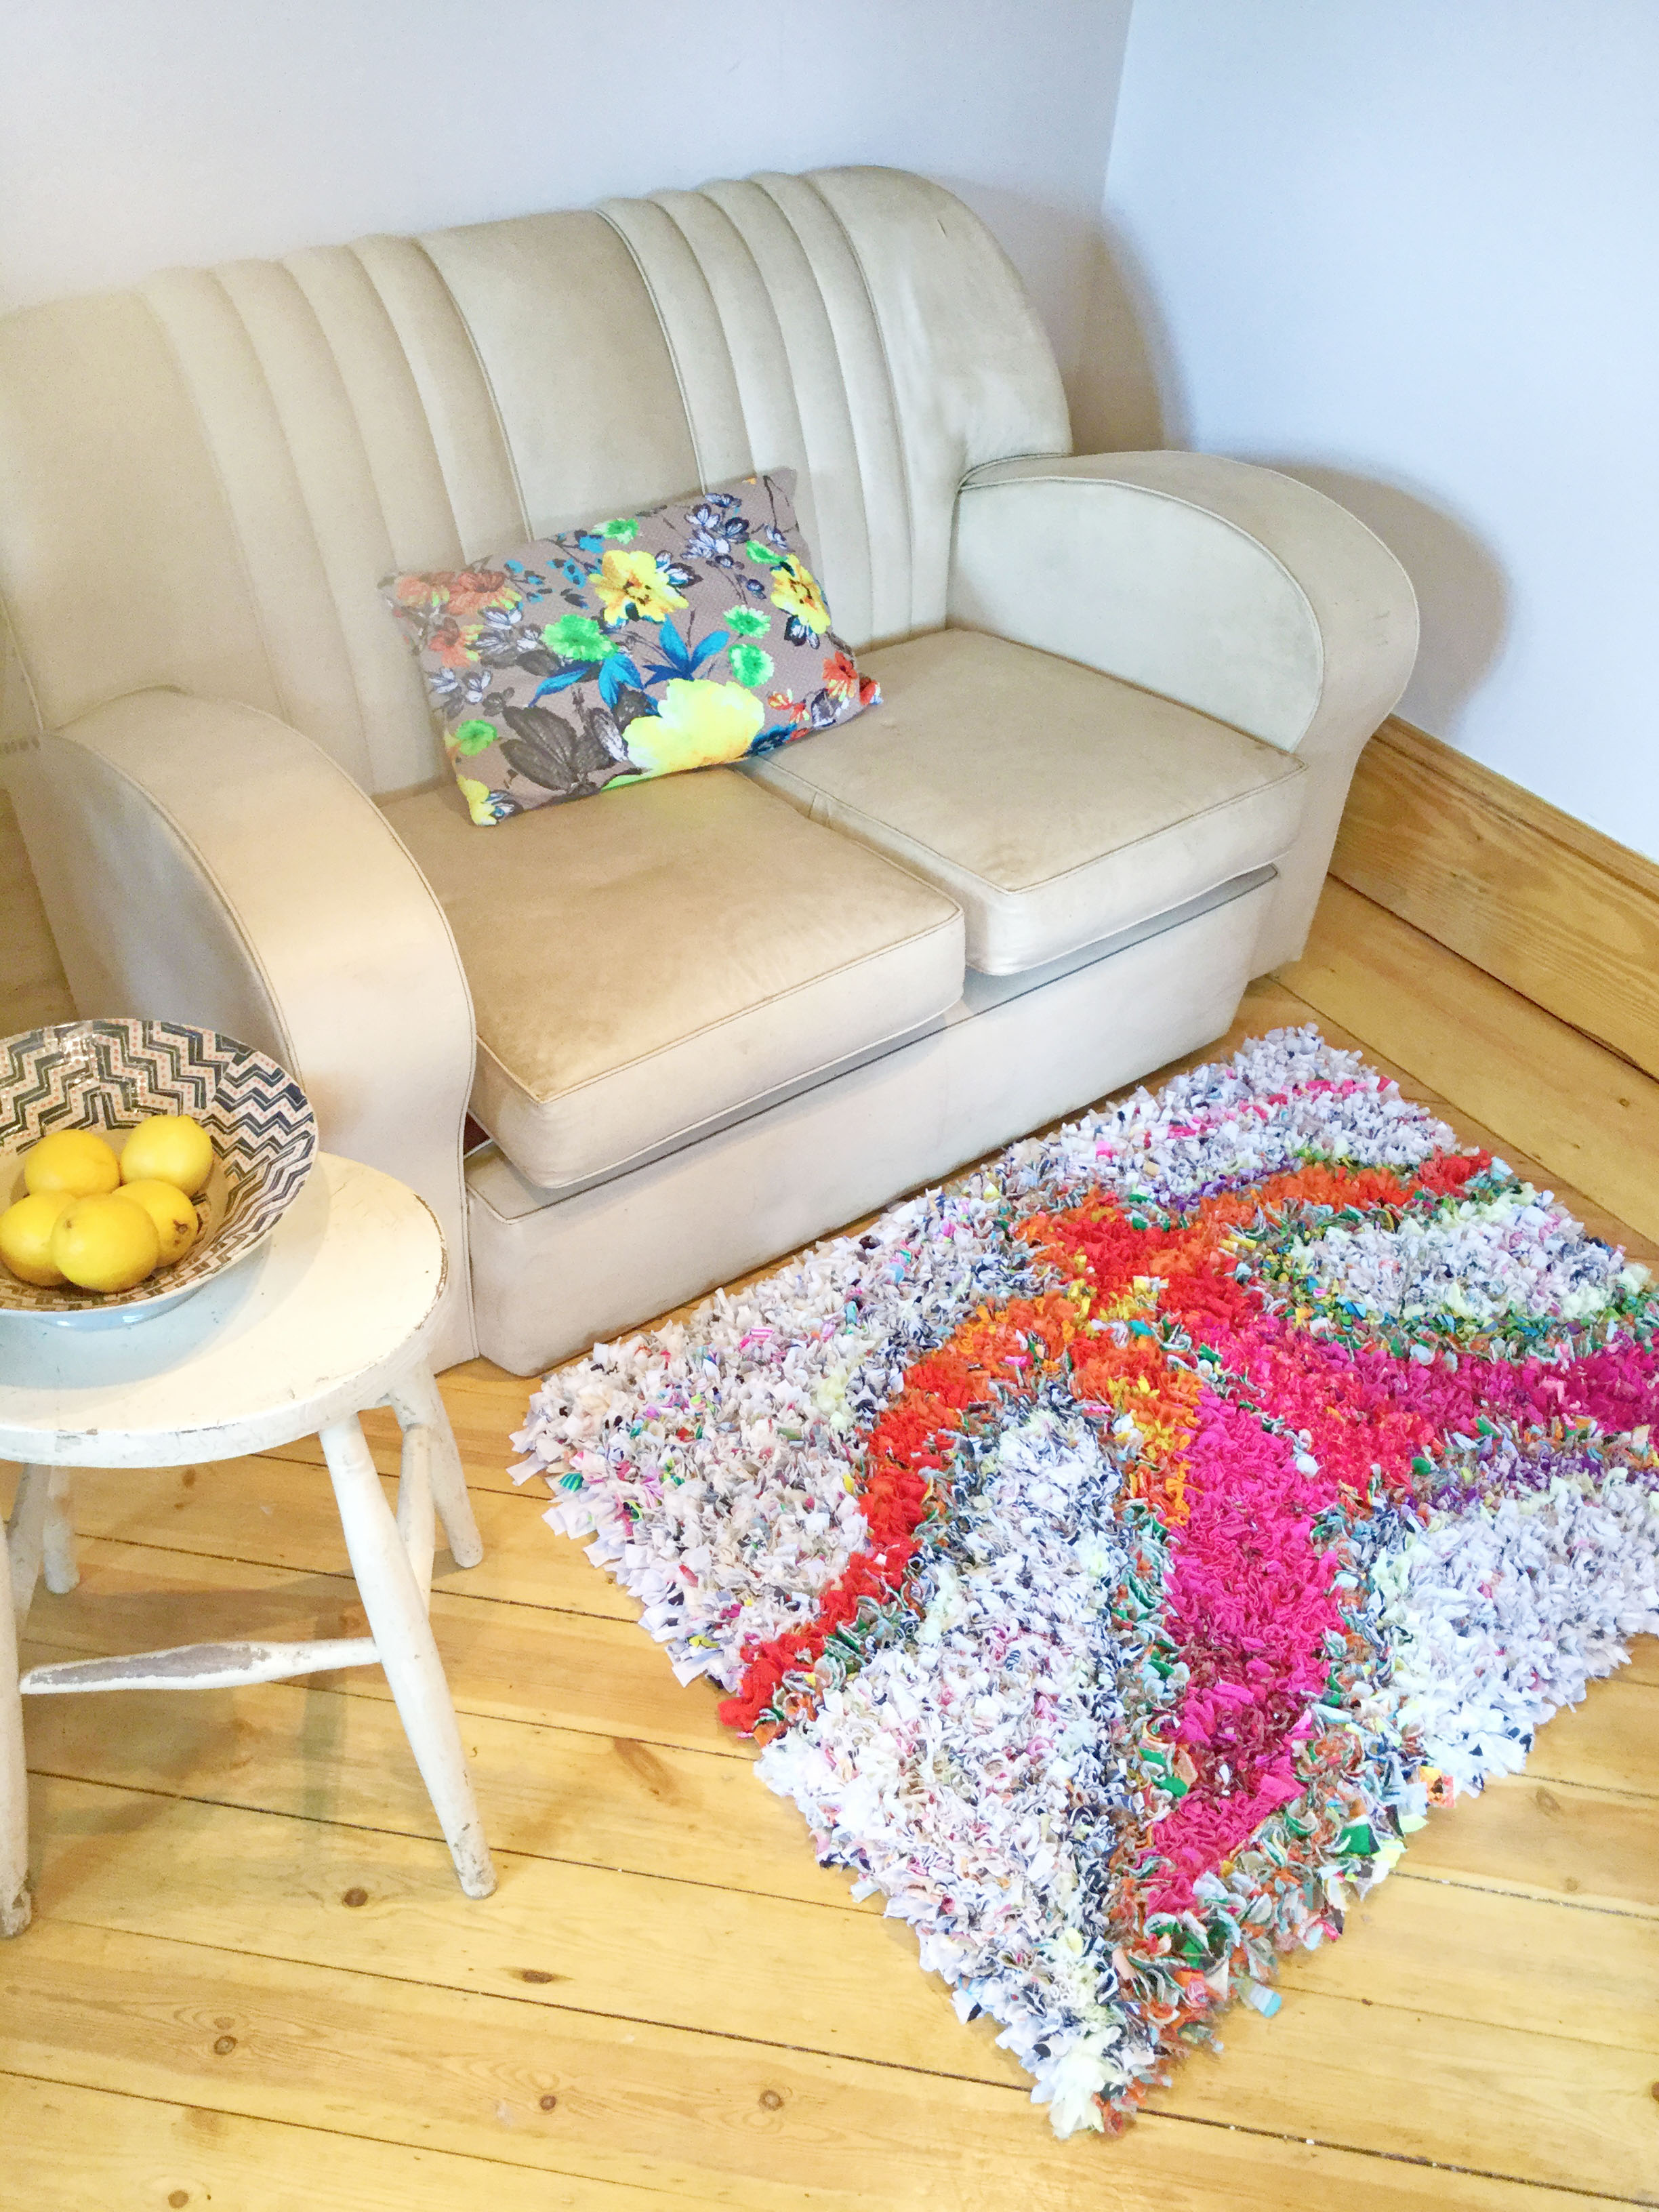 Ragged Life Blog | Rag Rug in Front of